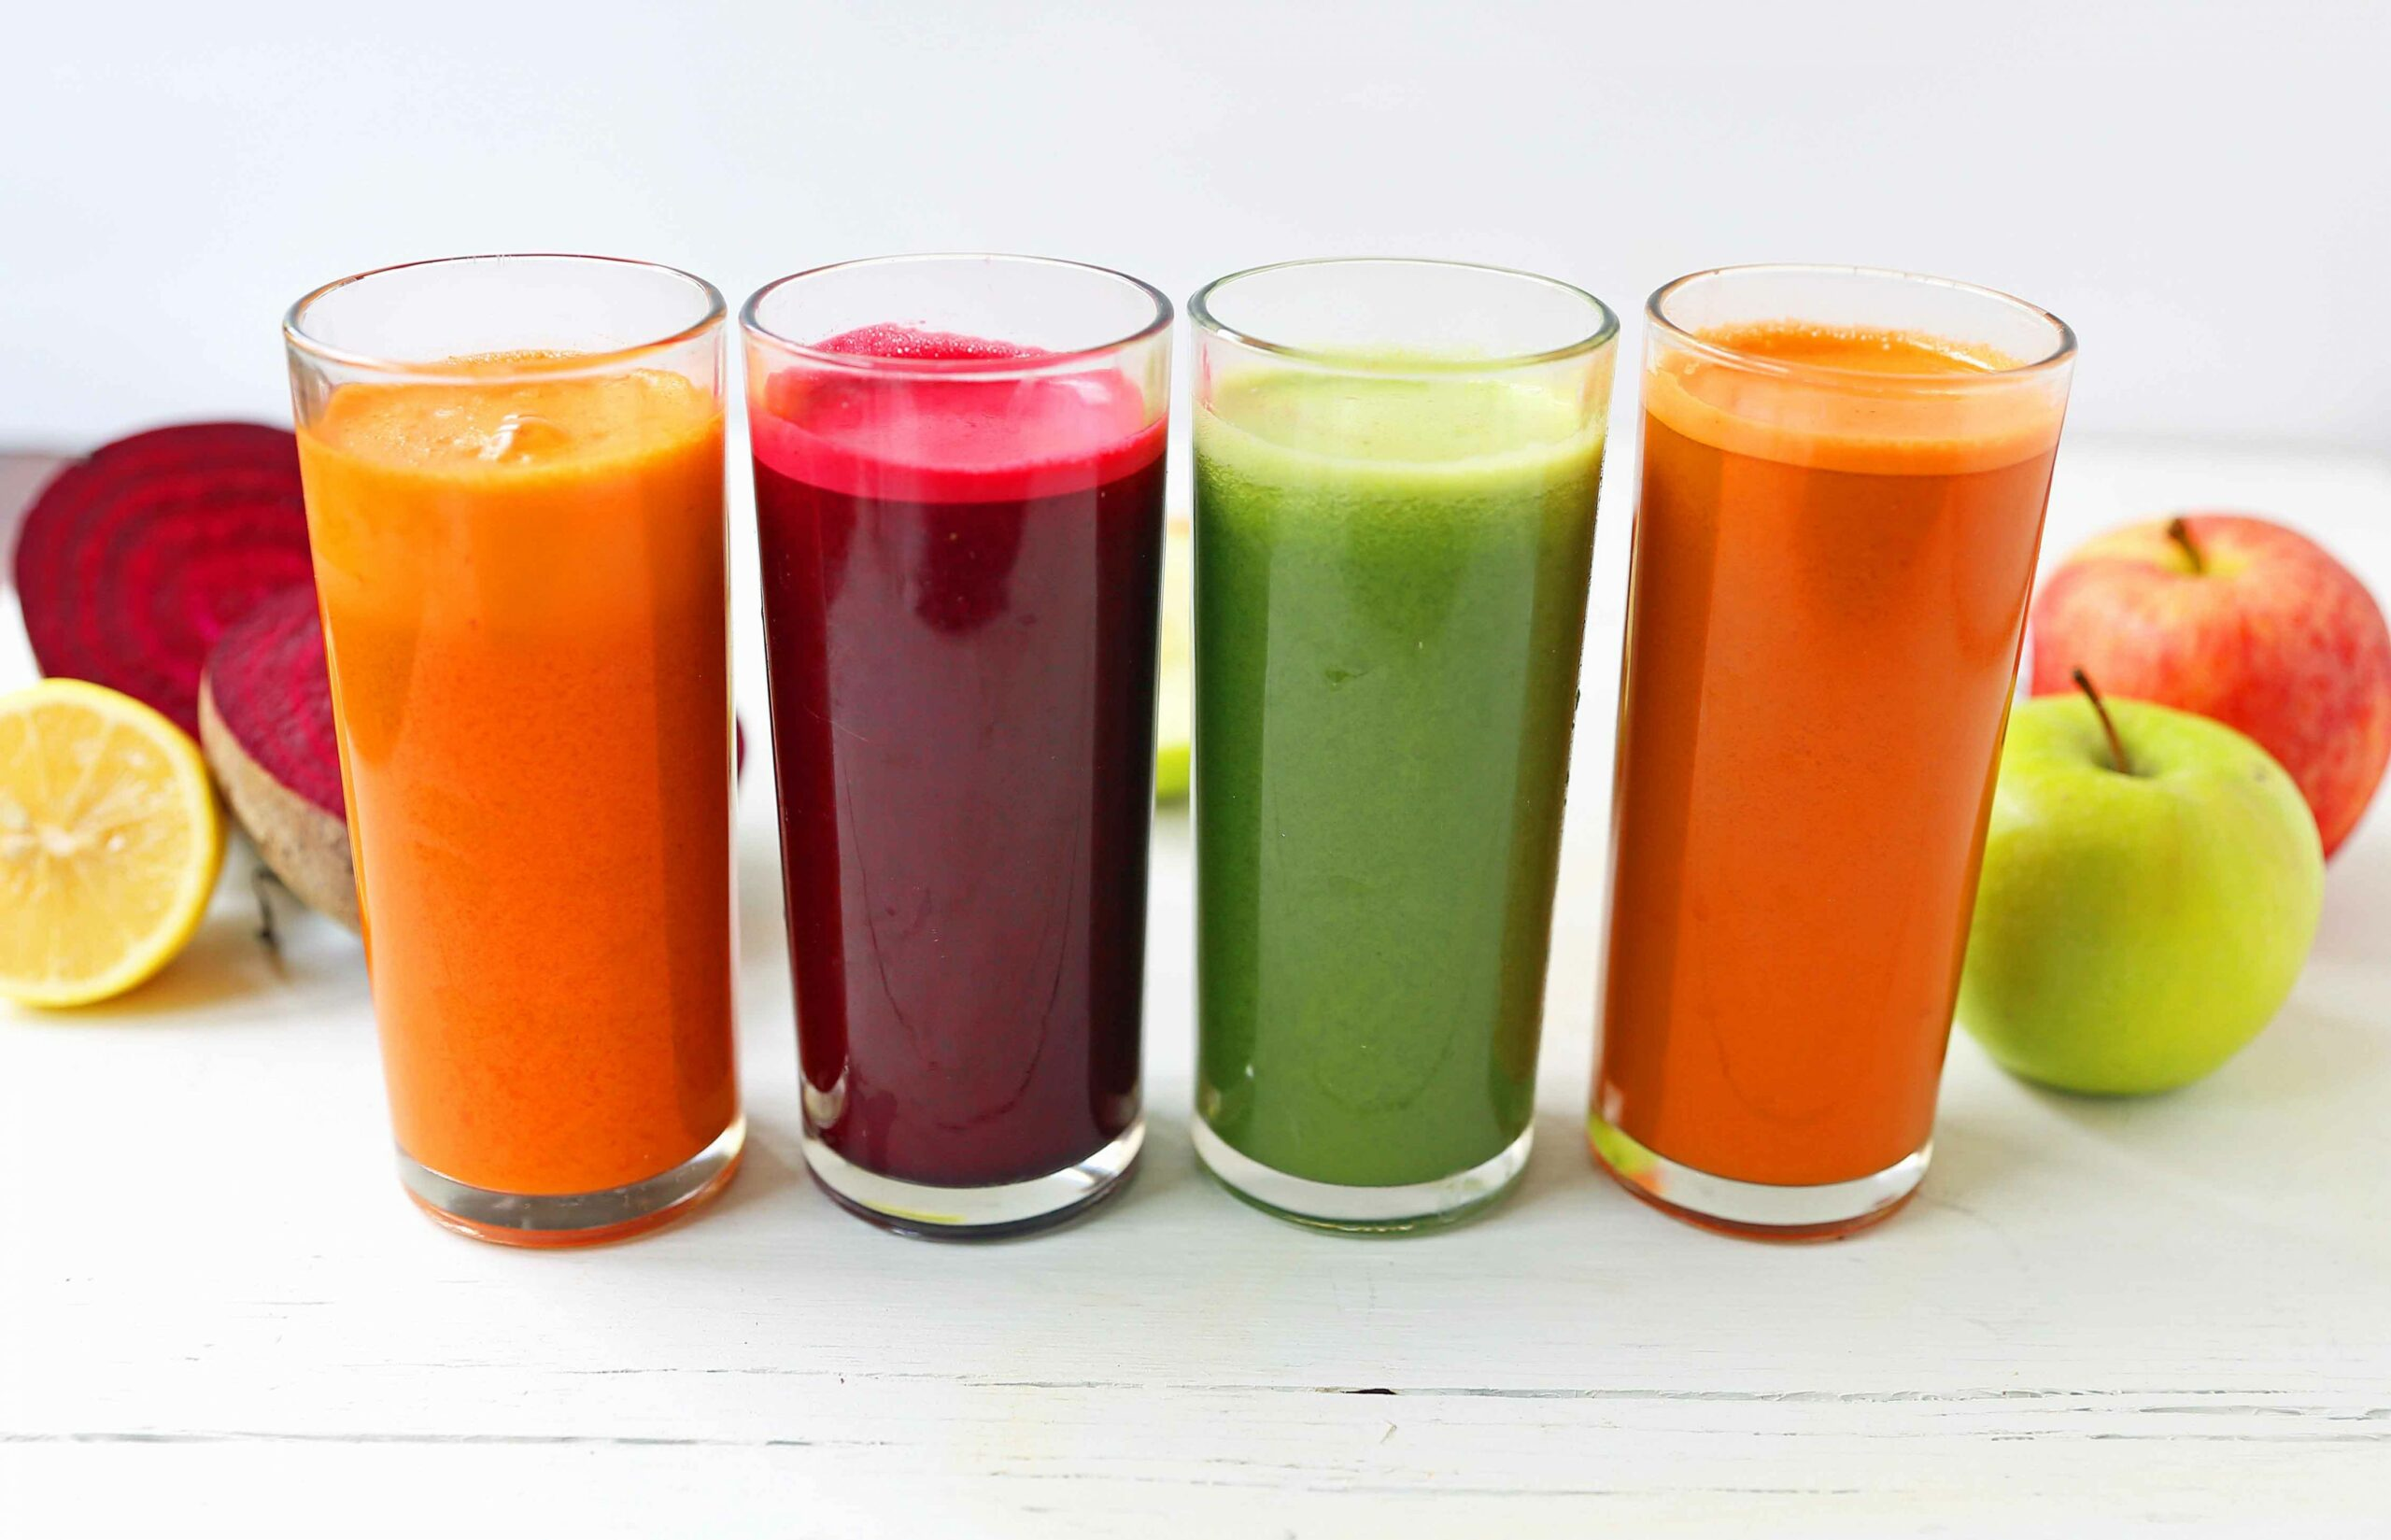 Healthy Juice Cleanse Recipes - Recipes For Vegetable Juice In A Blender